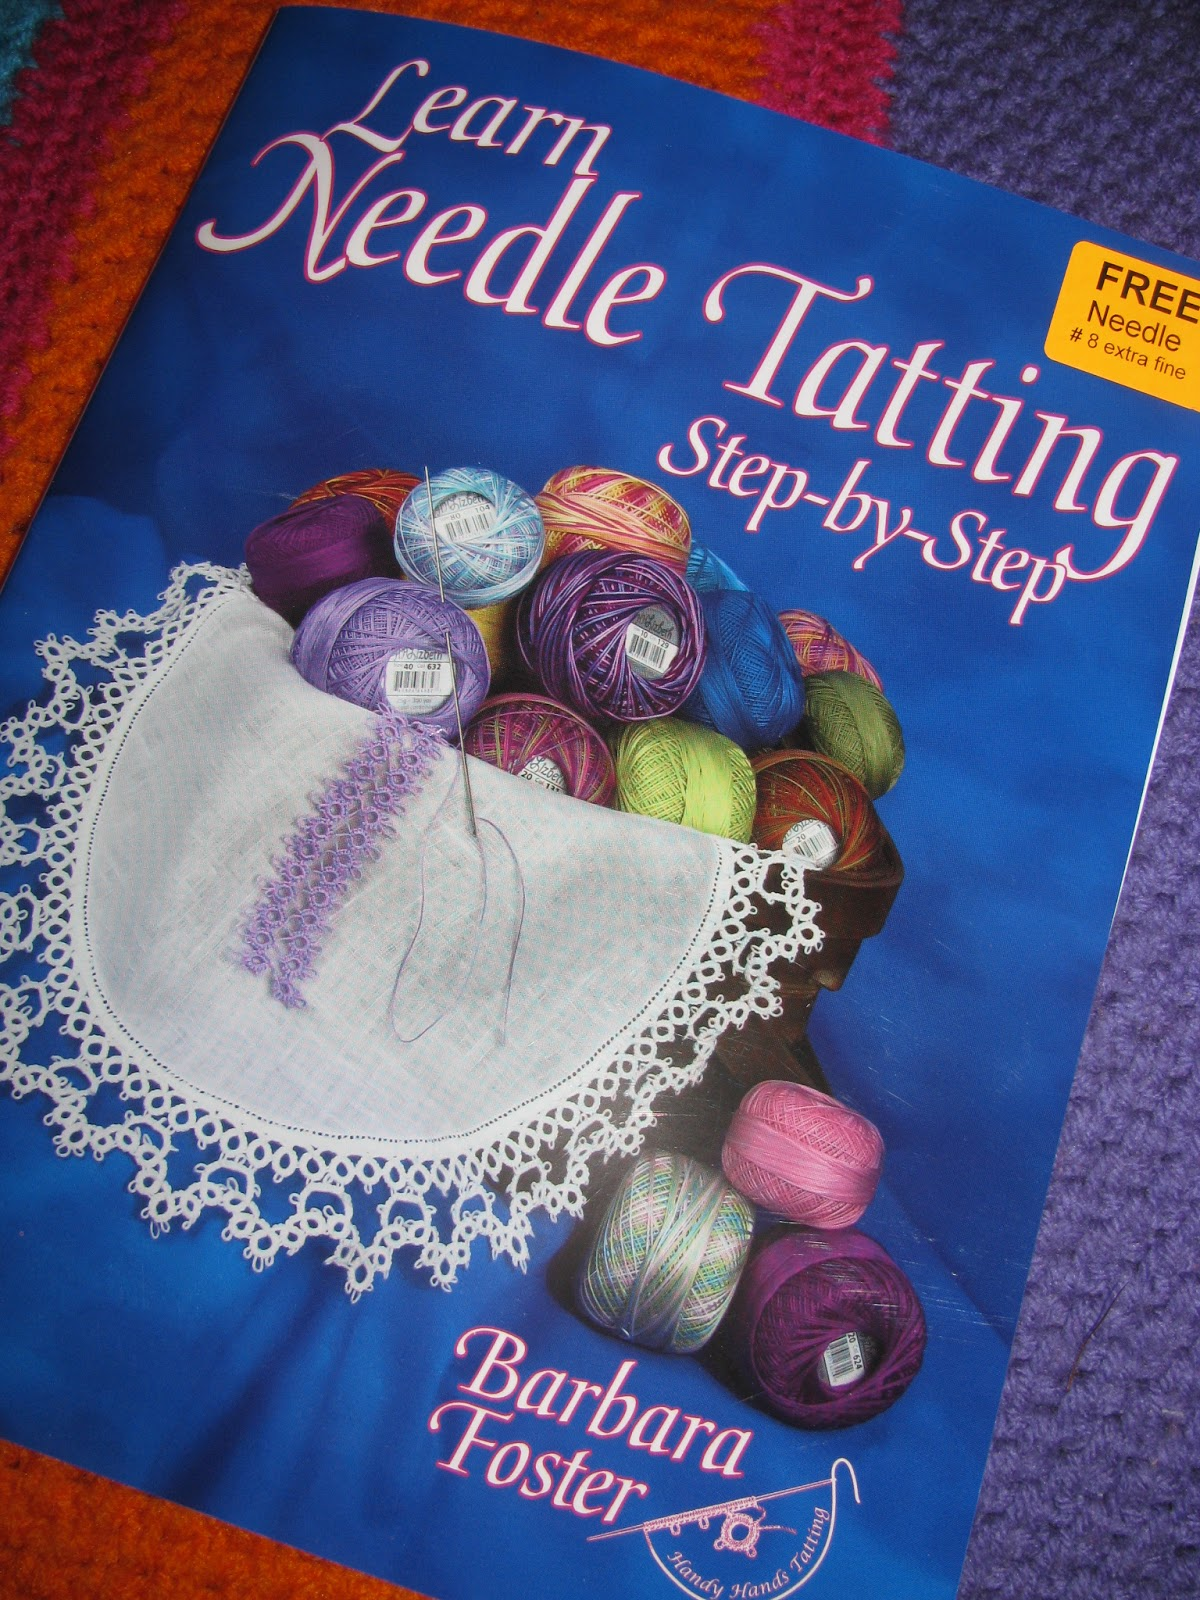 Learn Needle Tatting - instructables.com